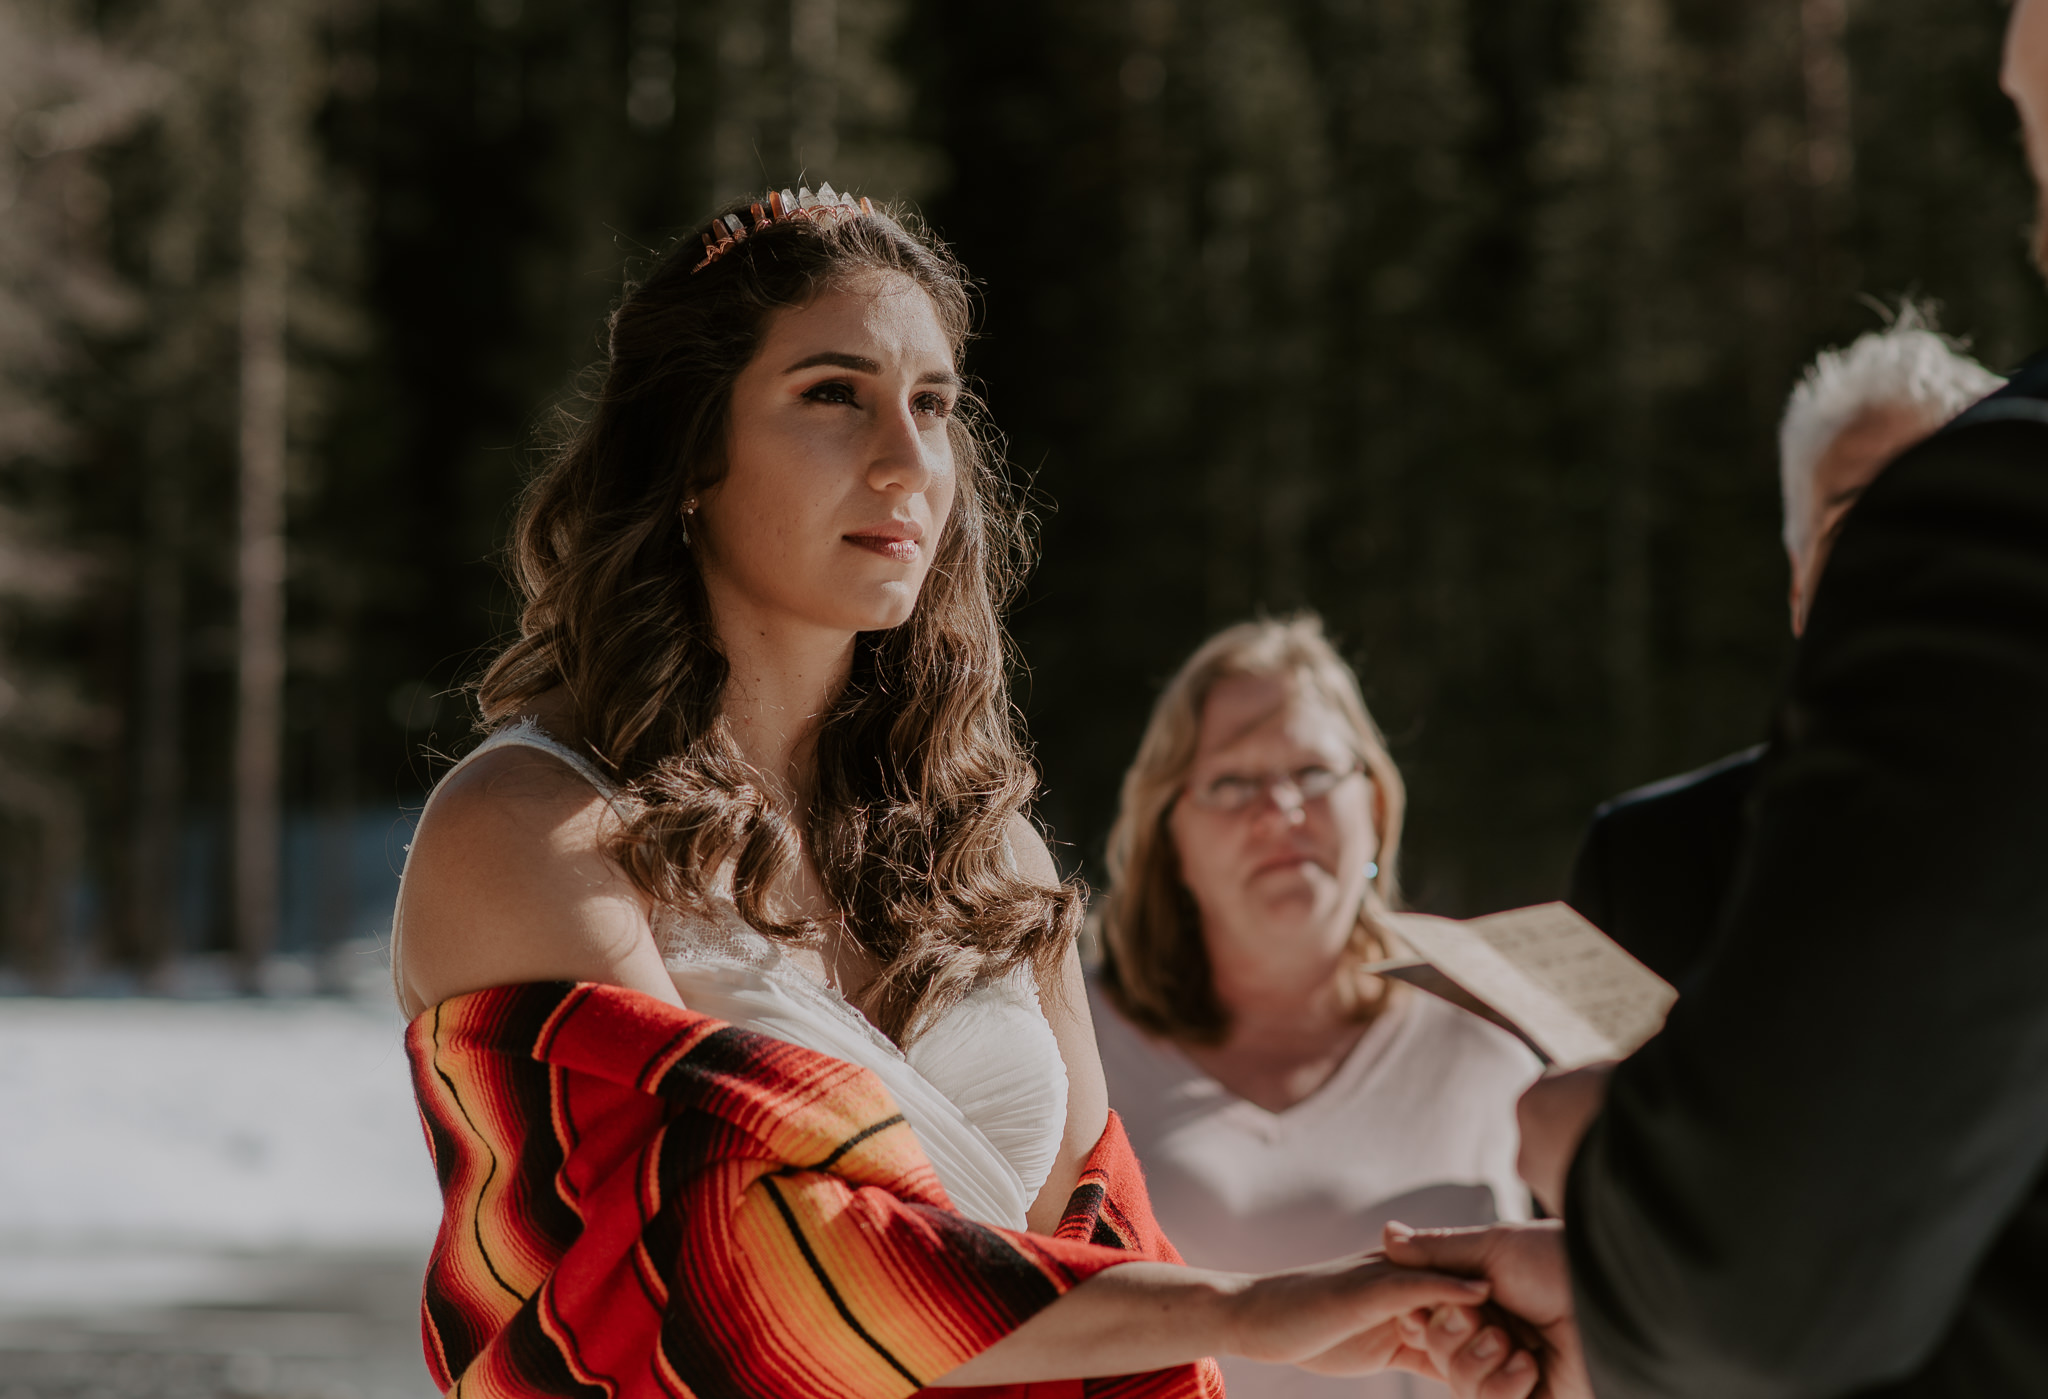 Colorado elopement and wedding photographer. Adventure elopement in Rocky Mountain National Park.